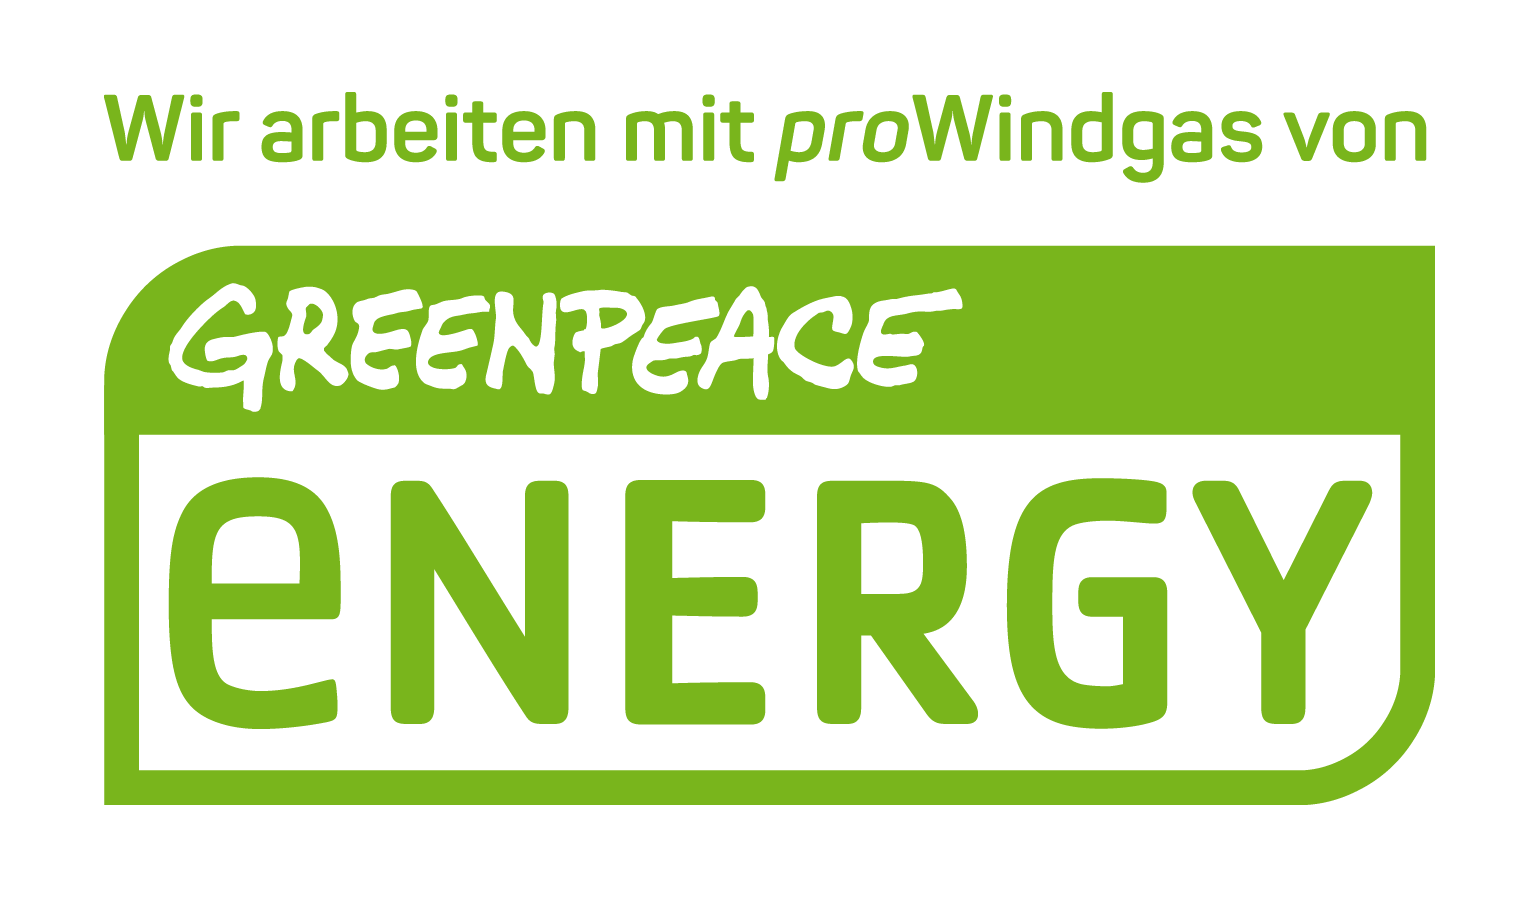 greenpeace logo windgas gr